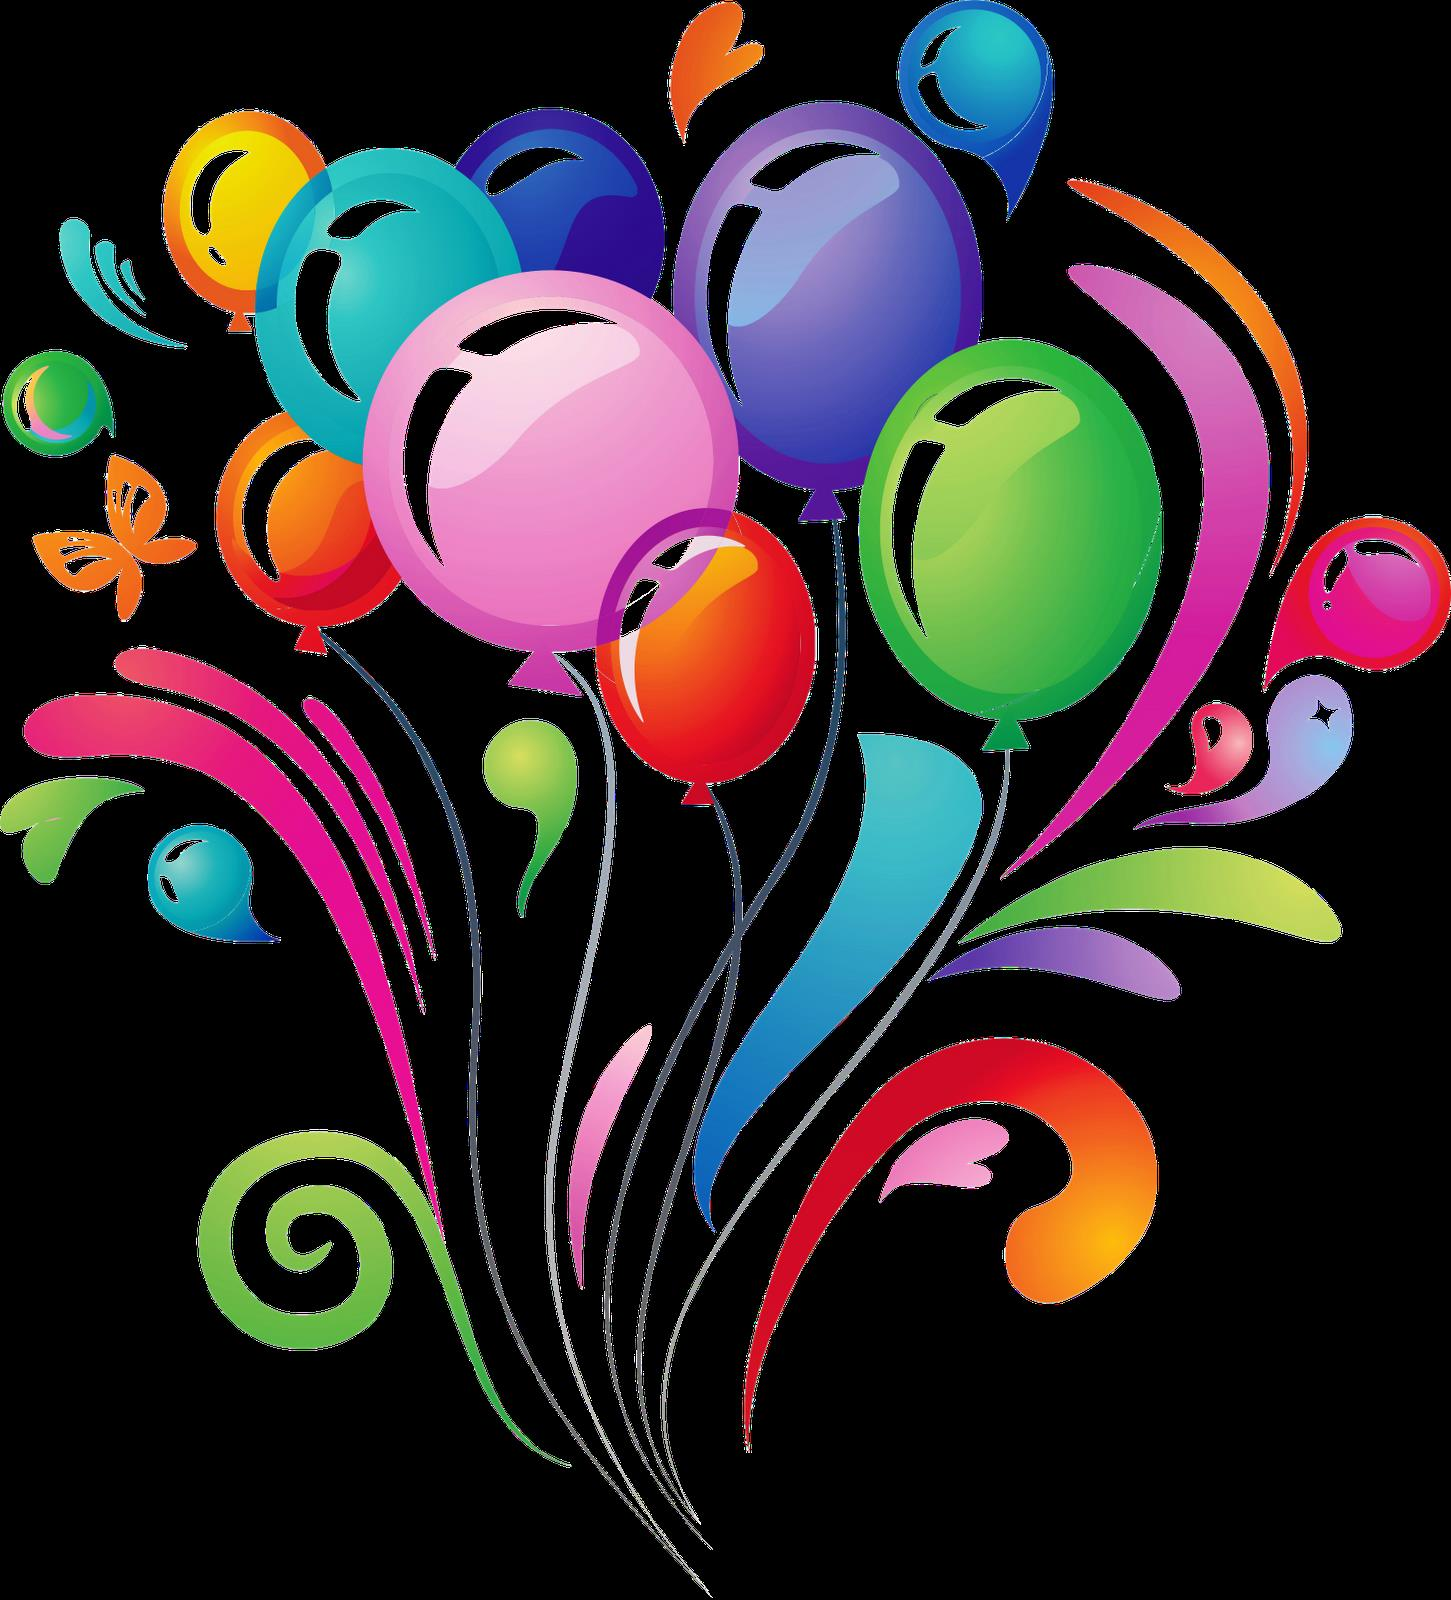 happy birthday png background ; Happy-Birthday-Transparent-Background